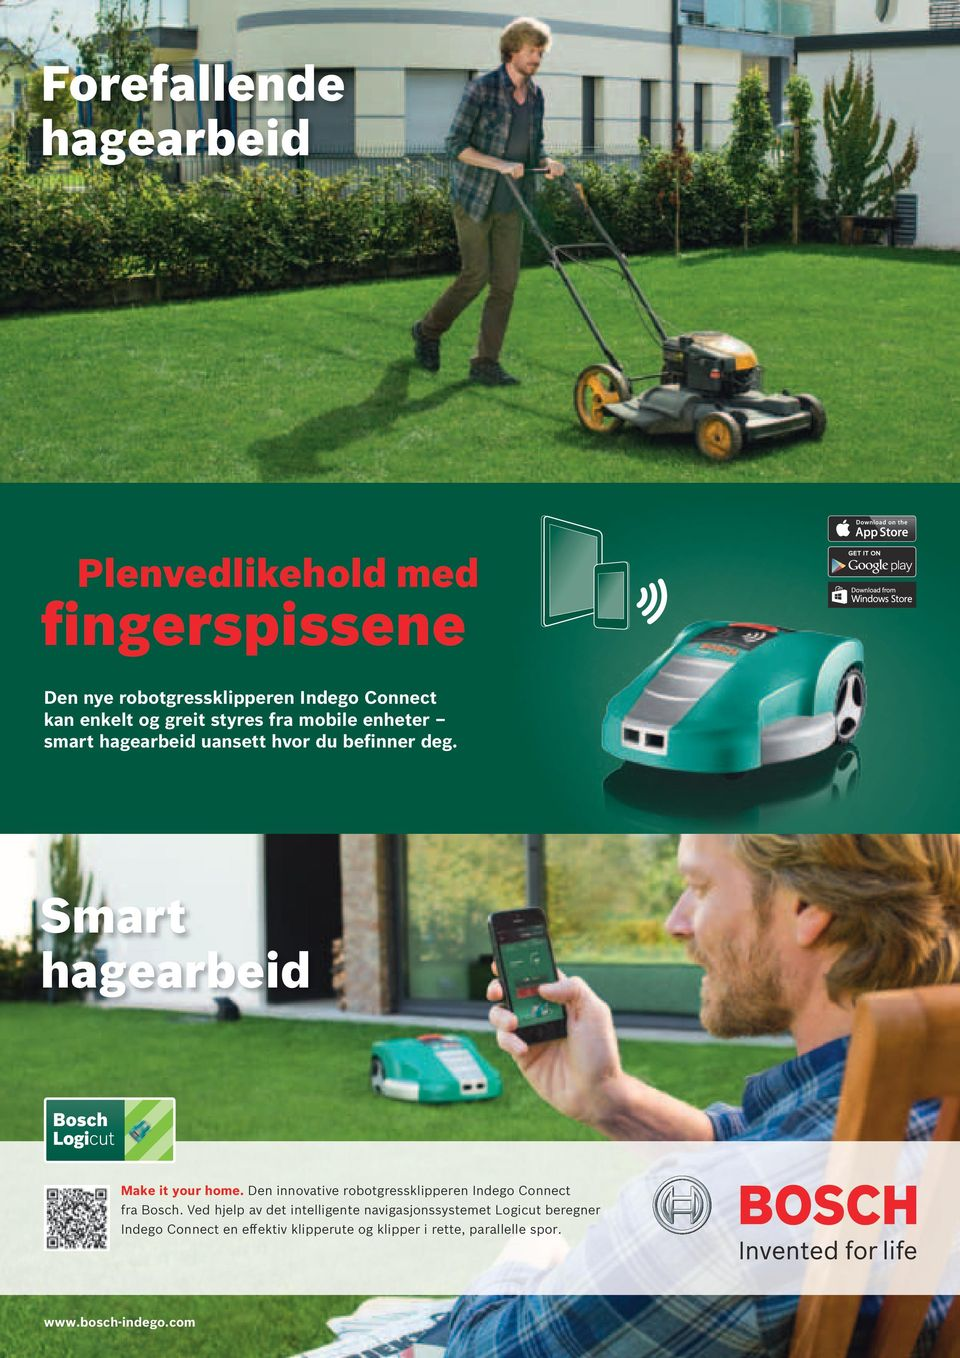 Smart hagearbeid Make it your home. Den innovative robotgressklipperen Indego Connect fra Bosch.